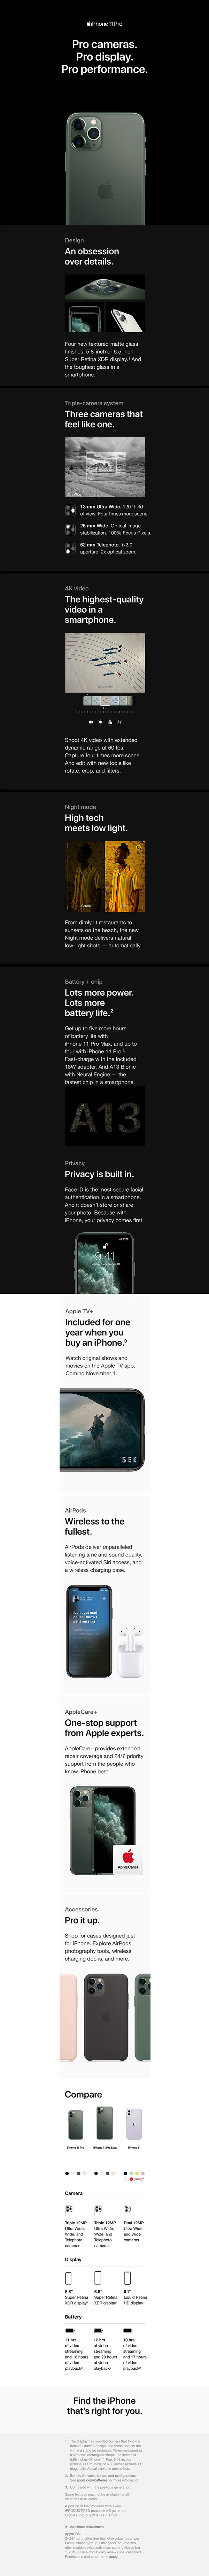 iPhone 11 Pro Product Overview Page